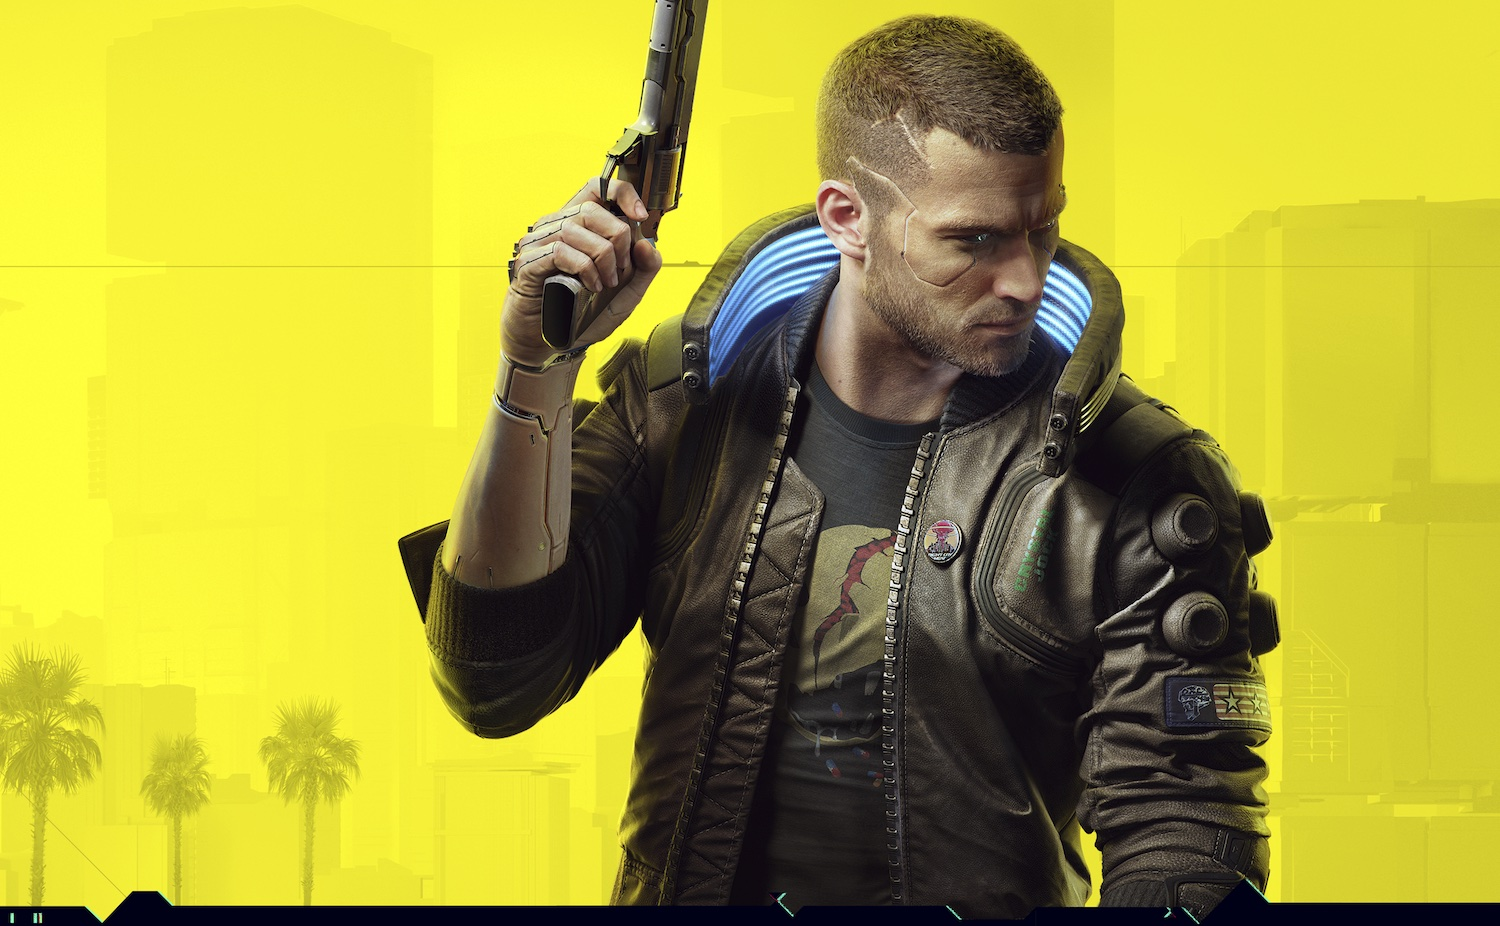 Sony pulls 'Cyberpunk 2077' from store, offers refunds to customers who bought it